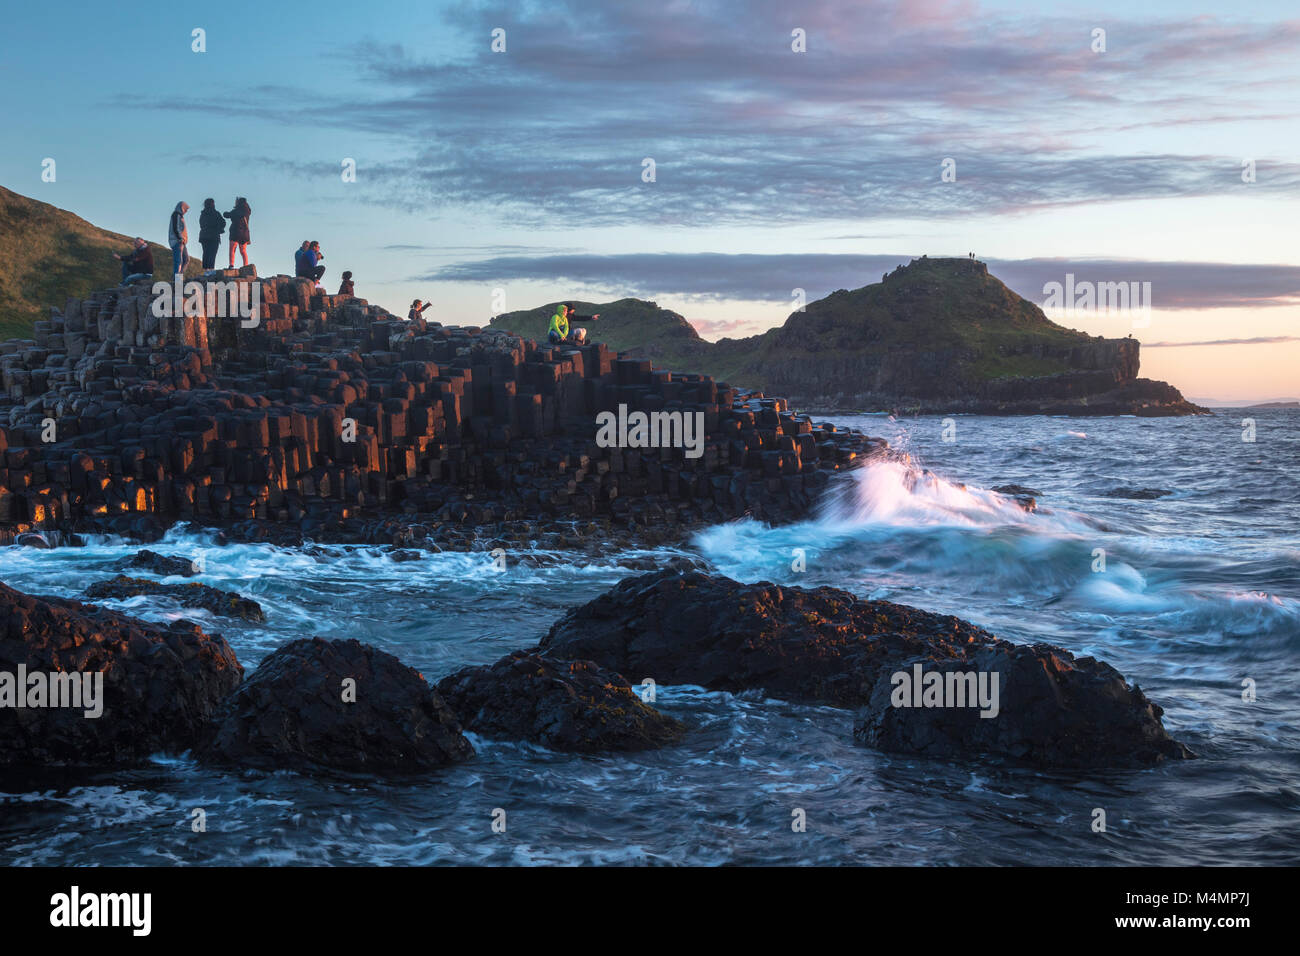 Evening visitors at the Giant's Causeway, Country Antrim, Northern Ireland. - Stock Image